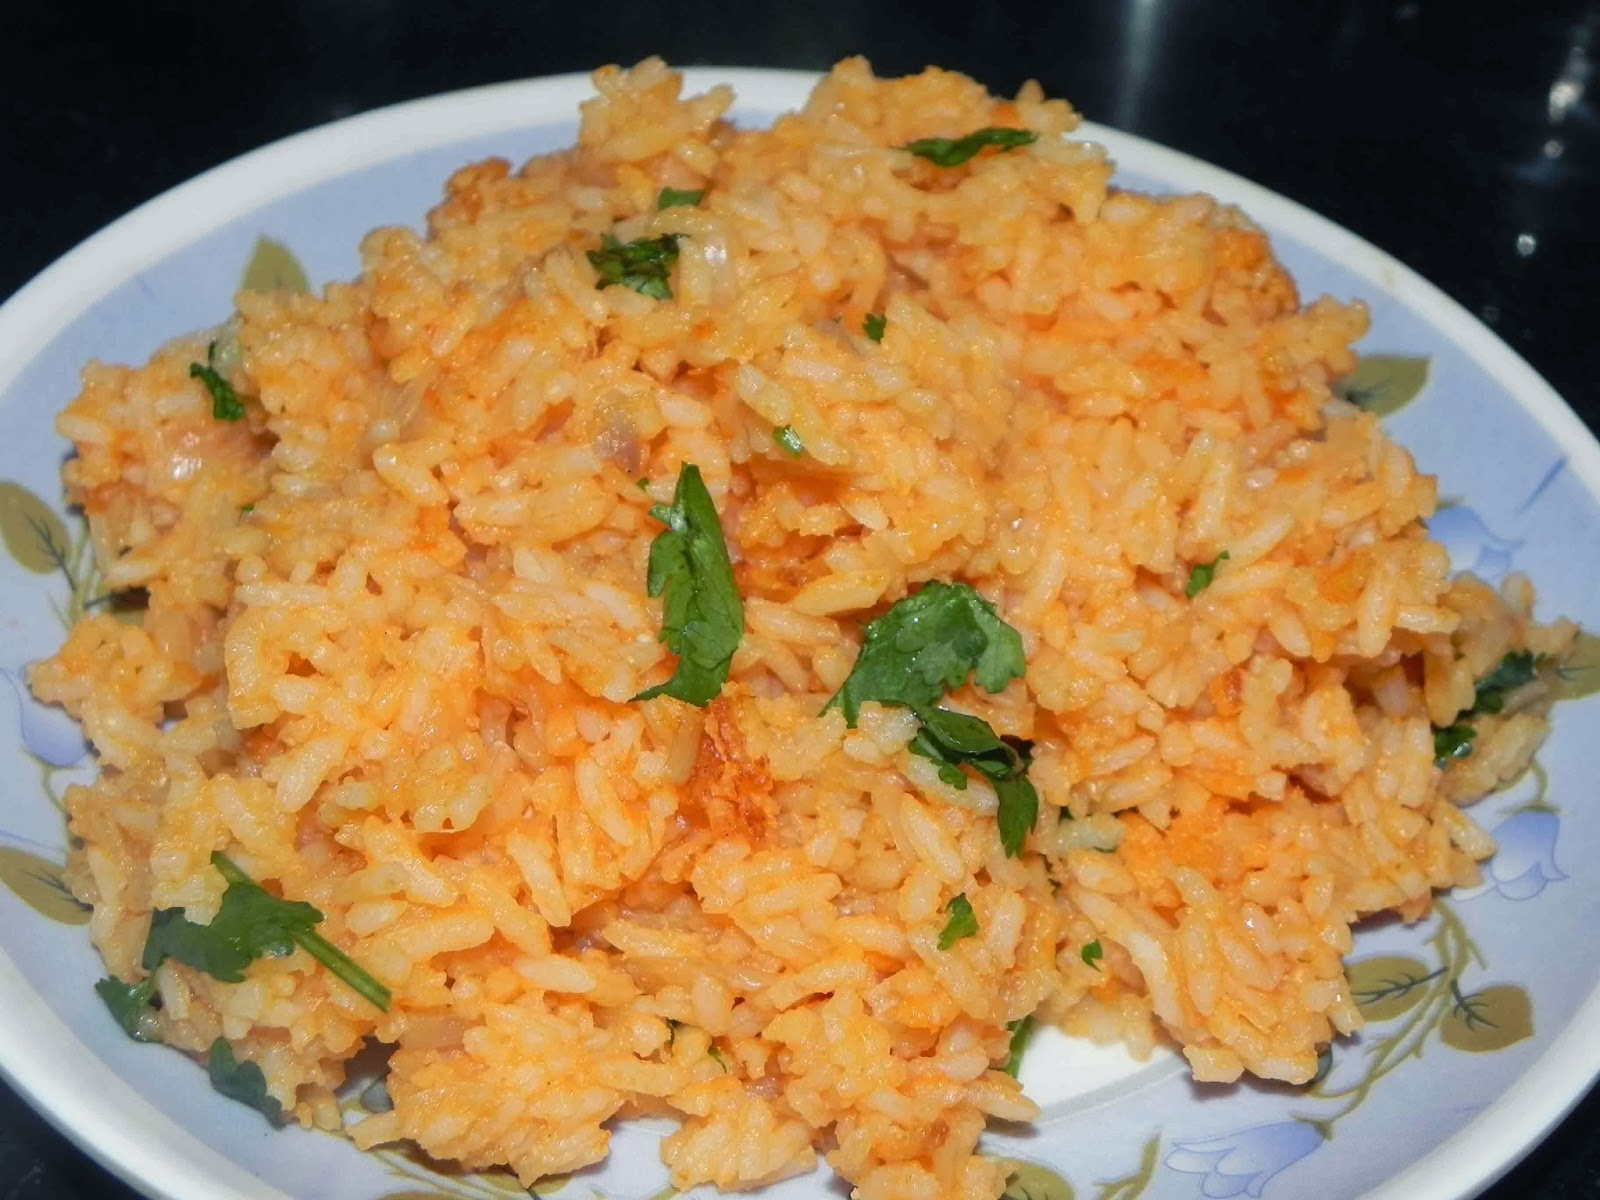 Indian healthy lunch box recipes delicious healthy home made indian healthy lunch box recipes delicious healthy home made indian food recipes forumfinder Image collections